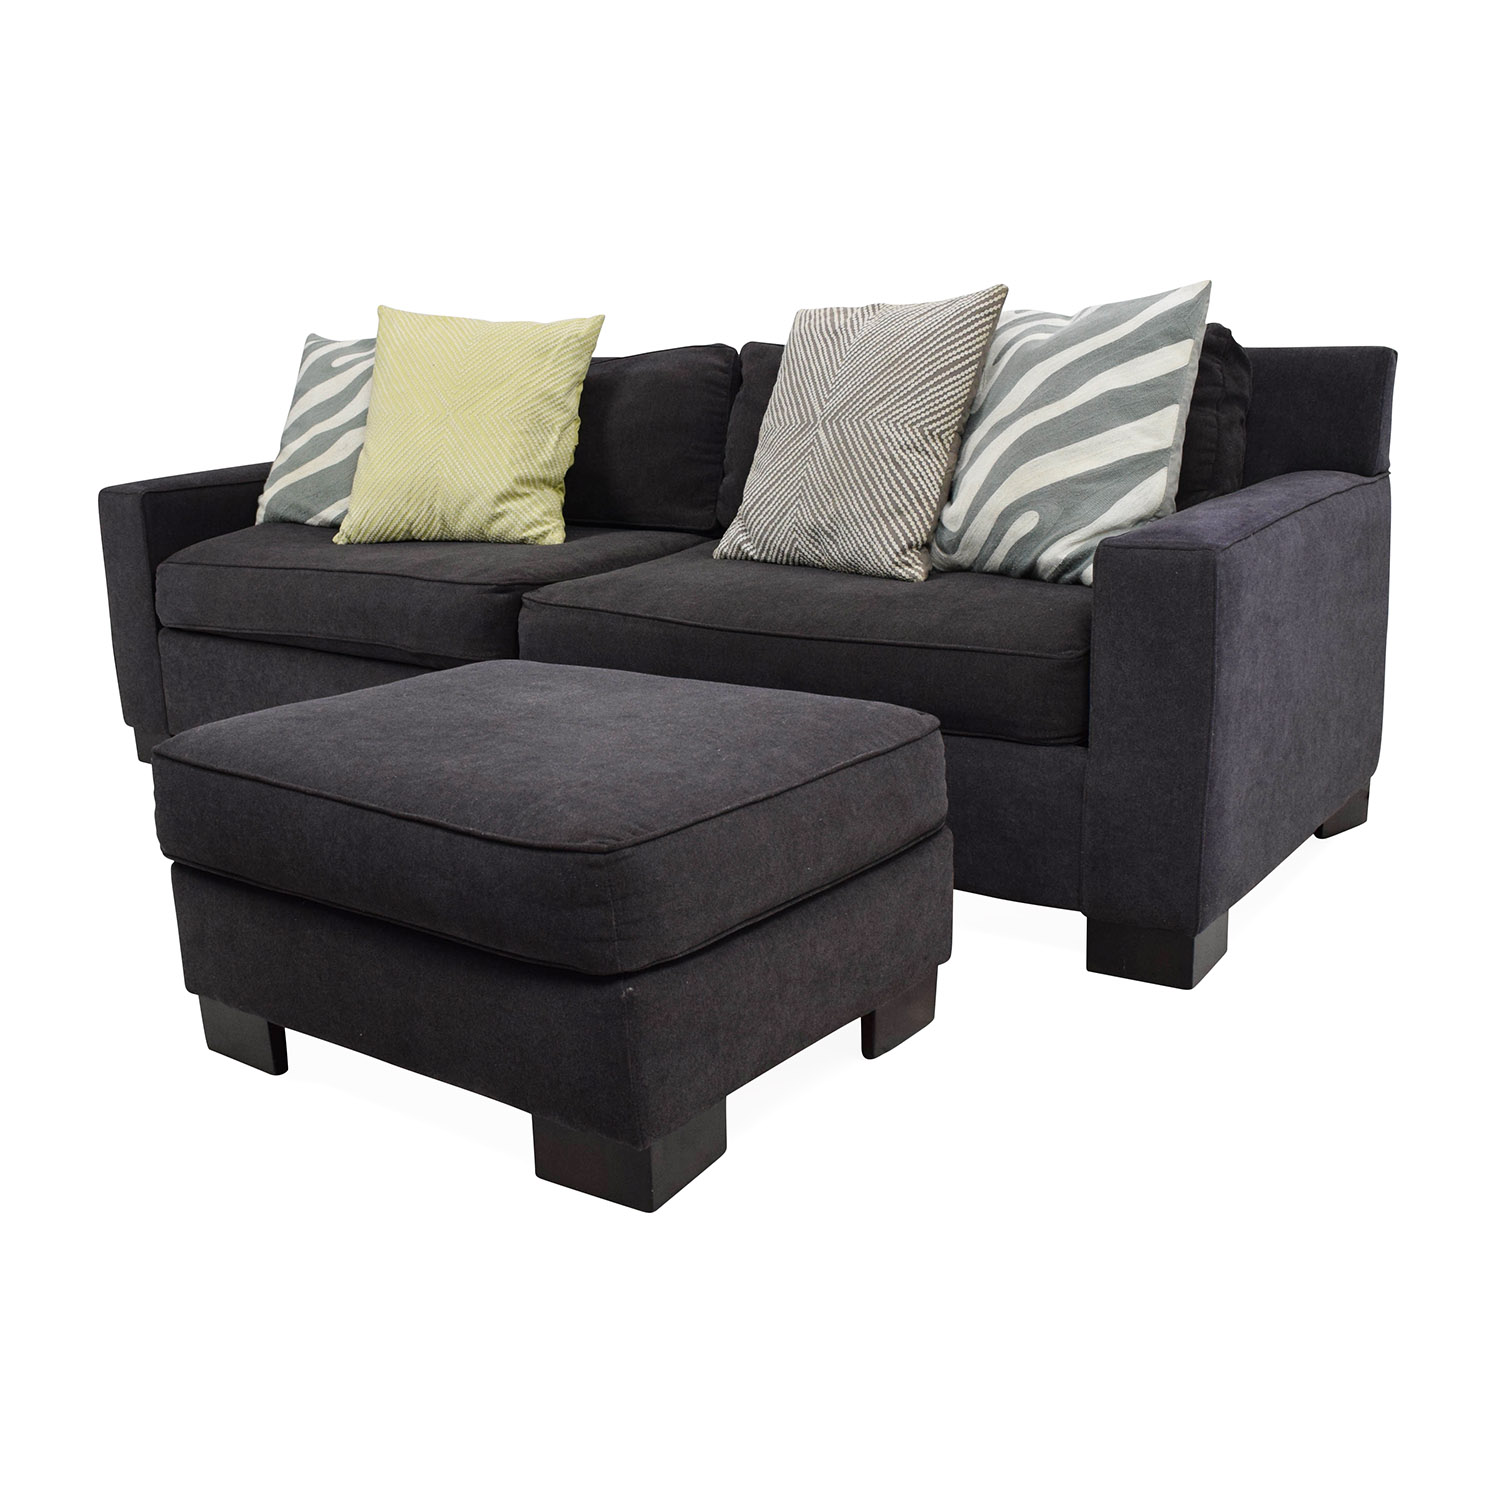 West Elm West Elm Sofa With Ottoman / Sofas